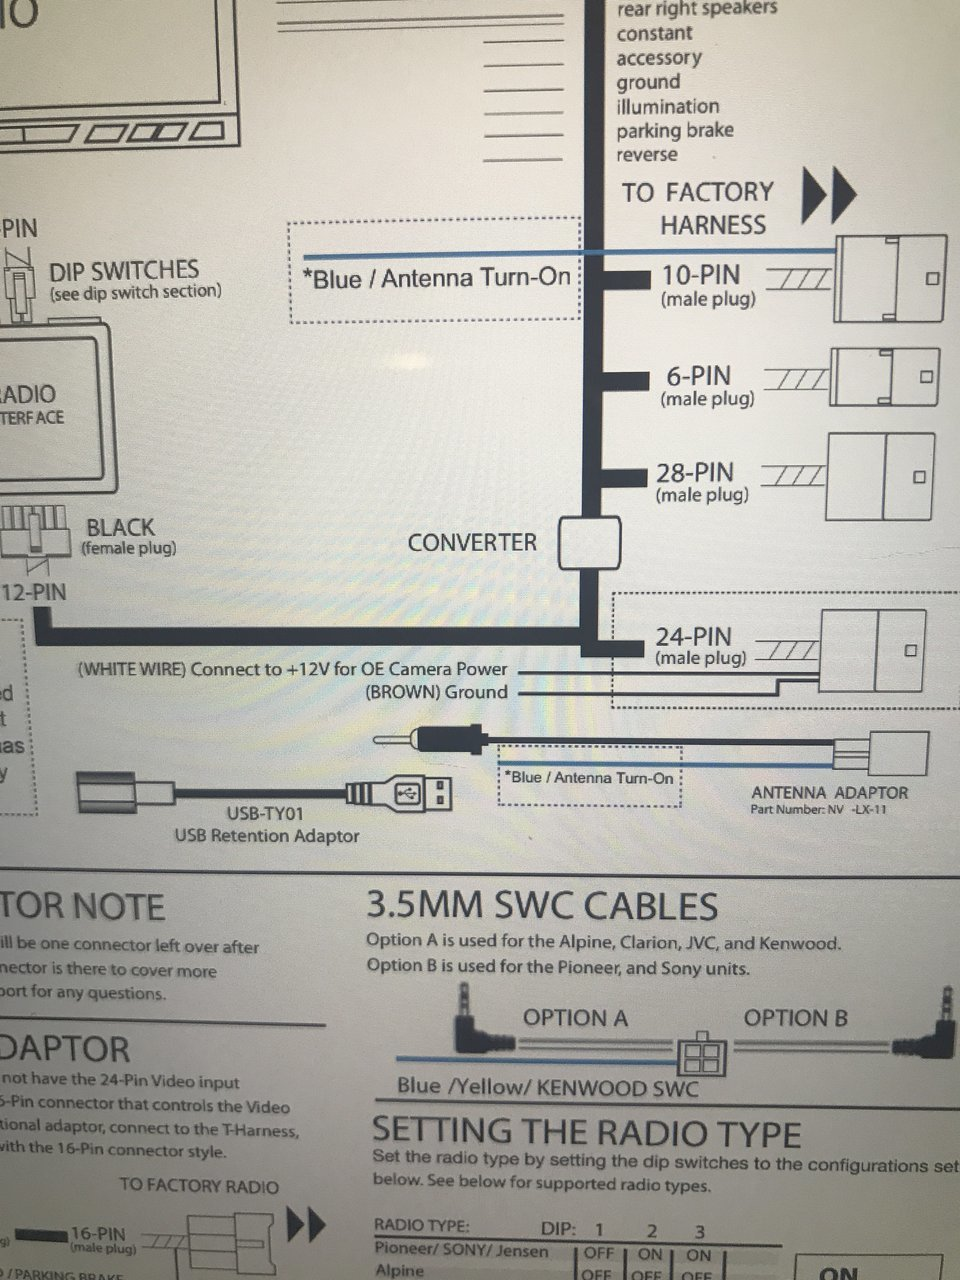 New Pioneer Install No Video On Backup Cam Tacoma World 12v Male Plug Wire Diagram Image